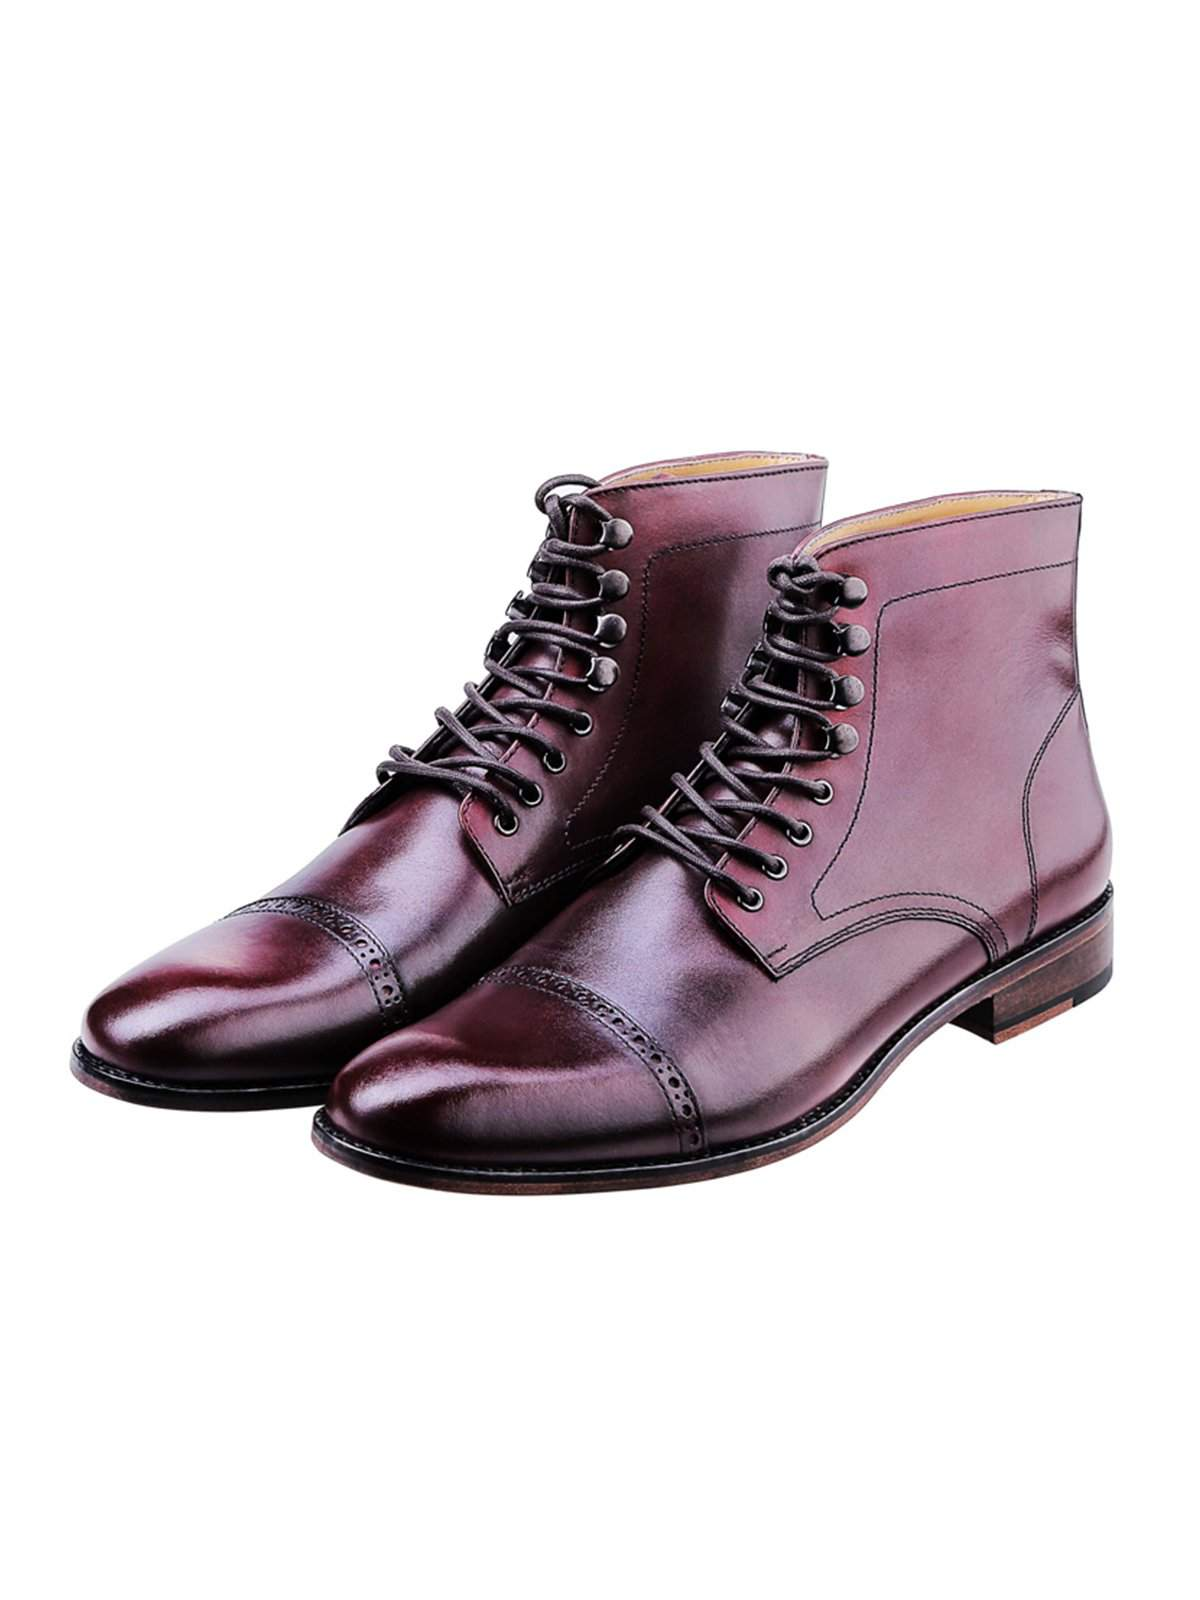 Heimdall Loki Cap Toe Brogue Burgundy - MORE by Morello Indonesia